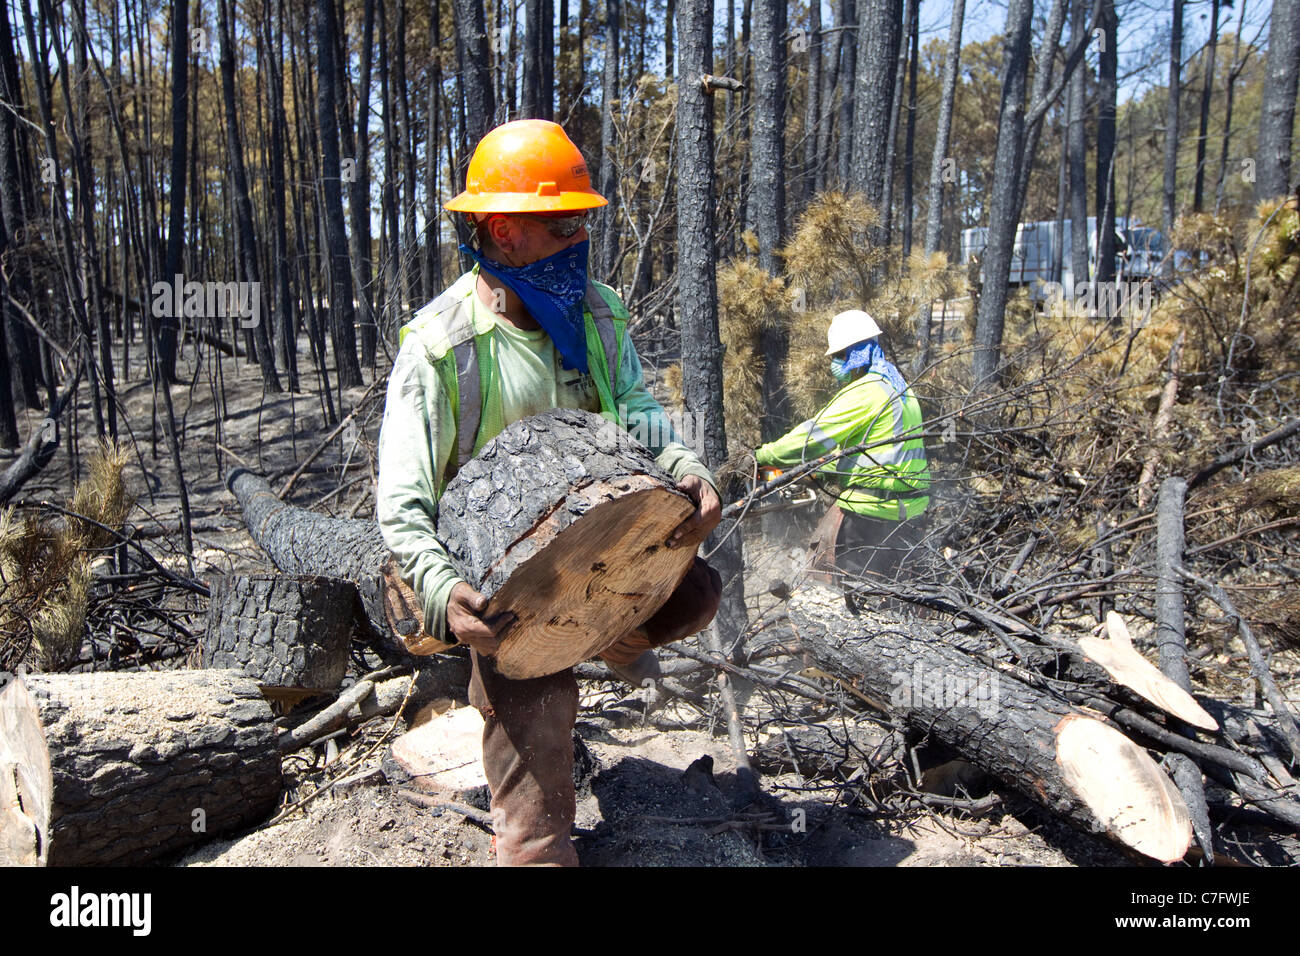 Tree removal experts working in a forested area near Bastrop Texas in the aftermath of a wildfire that burned 40,000 - Stock Image